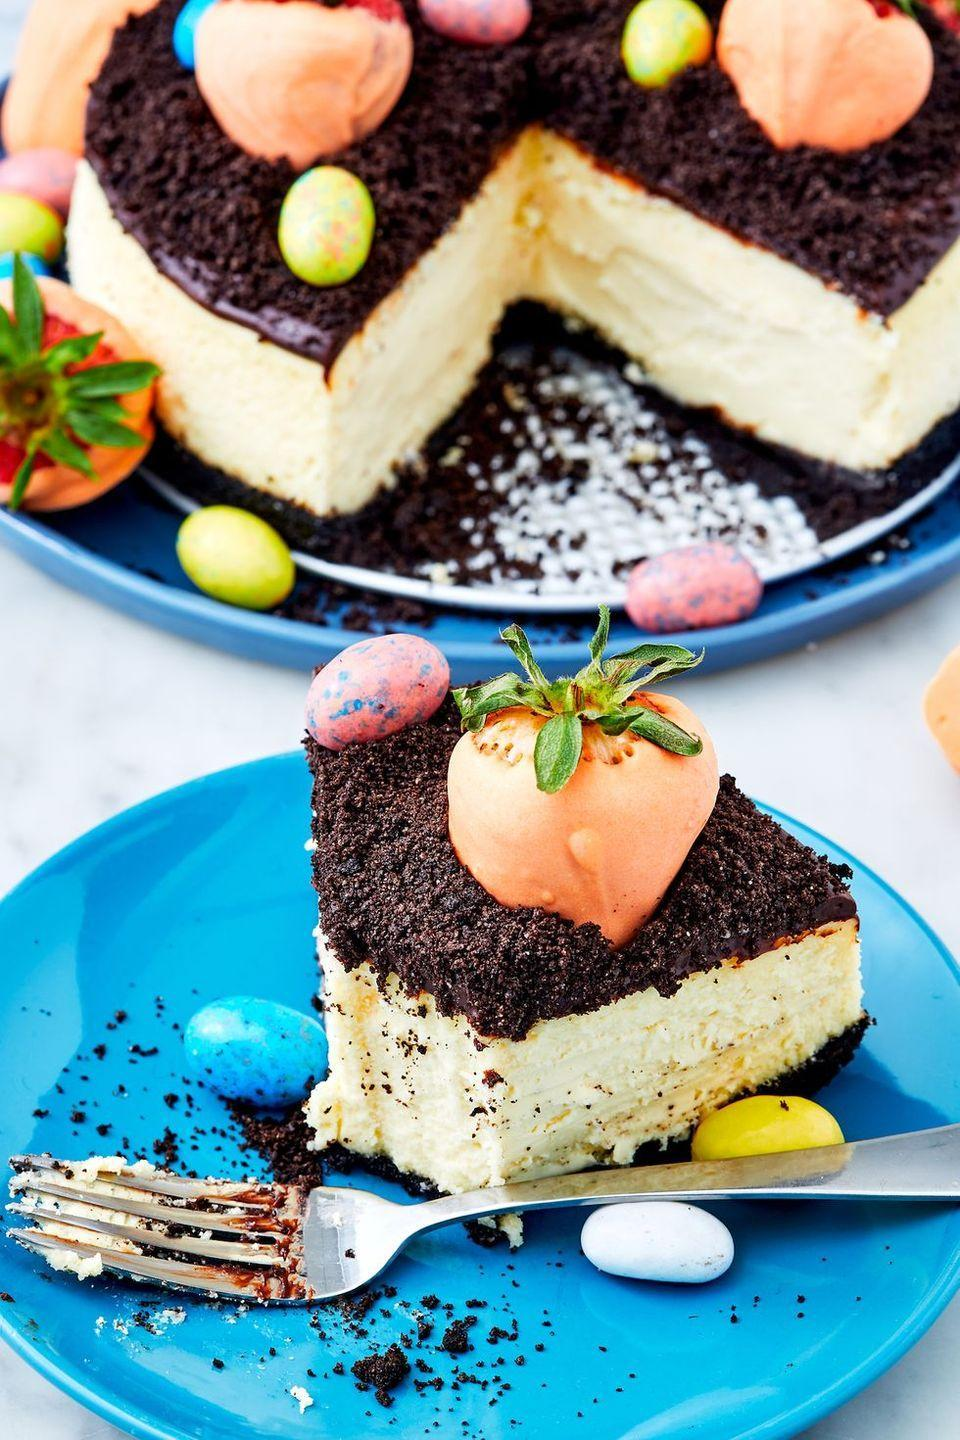 """<p>This <a href=""""https://www.delish.com/uk/cooking/recipes/a31095900/chocolate-orange-cheesecake/"""" rel=""""nofollow noopener"""" target=""""_blank"""" data-ylk=""""slk:cheesecake"""" class=""""link rapid-noclick-resp"""">cheesecake</a> is sure to elicit some oohs and ahhs from your <a href=""""https://www.delish.com/uk/cooking/recipes/g30764830/easter-recipes/"""" rel=""""nofollow noopener"""" target=""""_blank"""" data-ylk=""""slk:Easter dinner"""" class=""""link rapid-noclick-resp"""">Easter dinner</a> guests. Tip: Don't leave out the coconut oil! It makes the white chocolate much easier to work with, and will prevent the chocolate from breaking when food colouring is added.</p><p>Get the <a href=""""https://www.delish.com/uk/cooking/recipes/a32031739/carrot-patch-cheesecake-recipe/"""" rel=""""nofollow noopener"""" target=""""_blank"""" data-ylk=""""slk:Carrot Patch Cheesecake"""" class=""""link rapid-noclick-resp"""">Carrot Patch Cheesecake</a> recipe. </p>"""